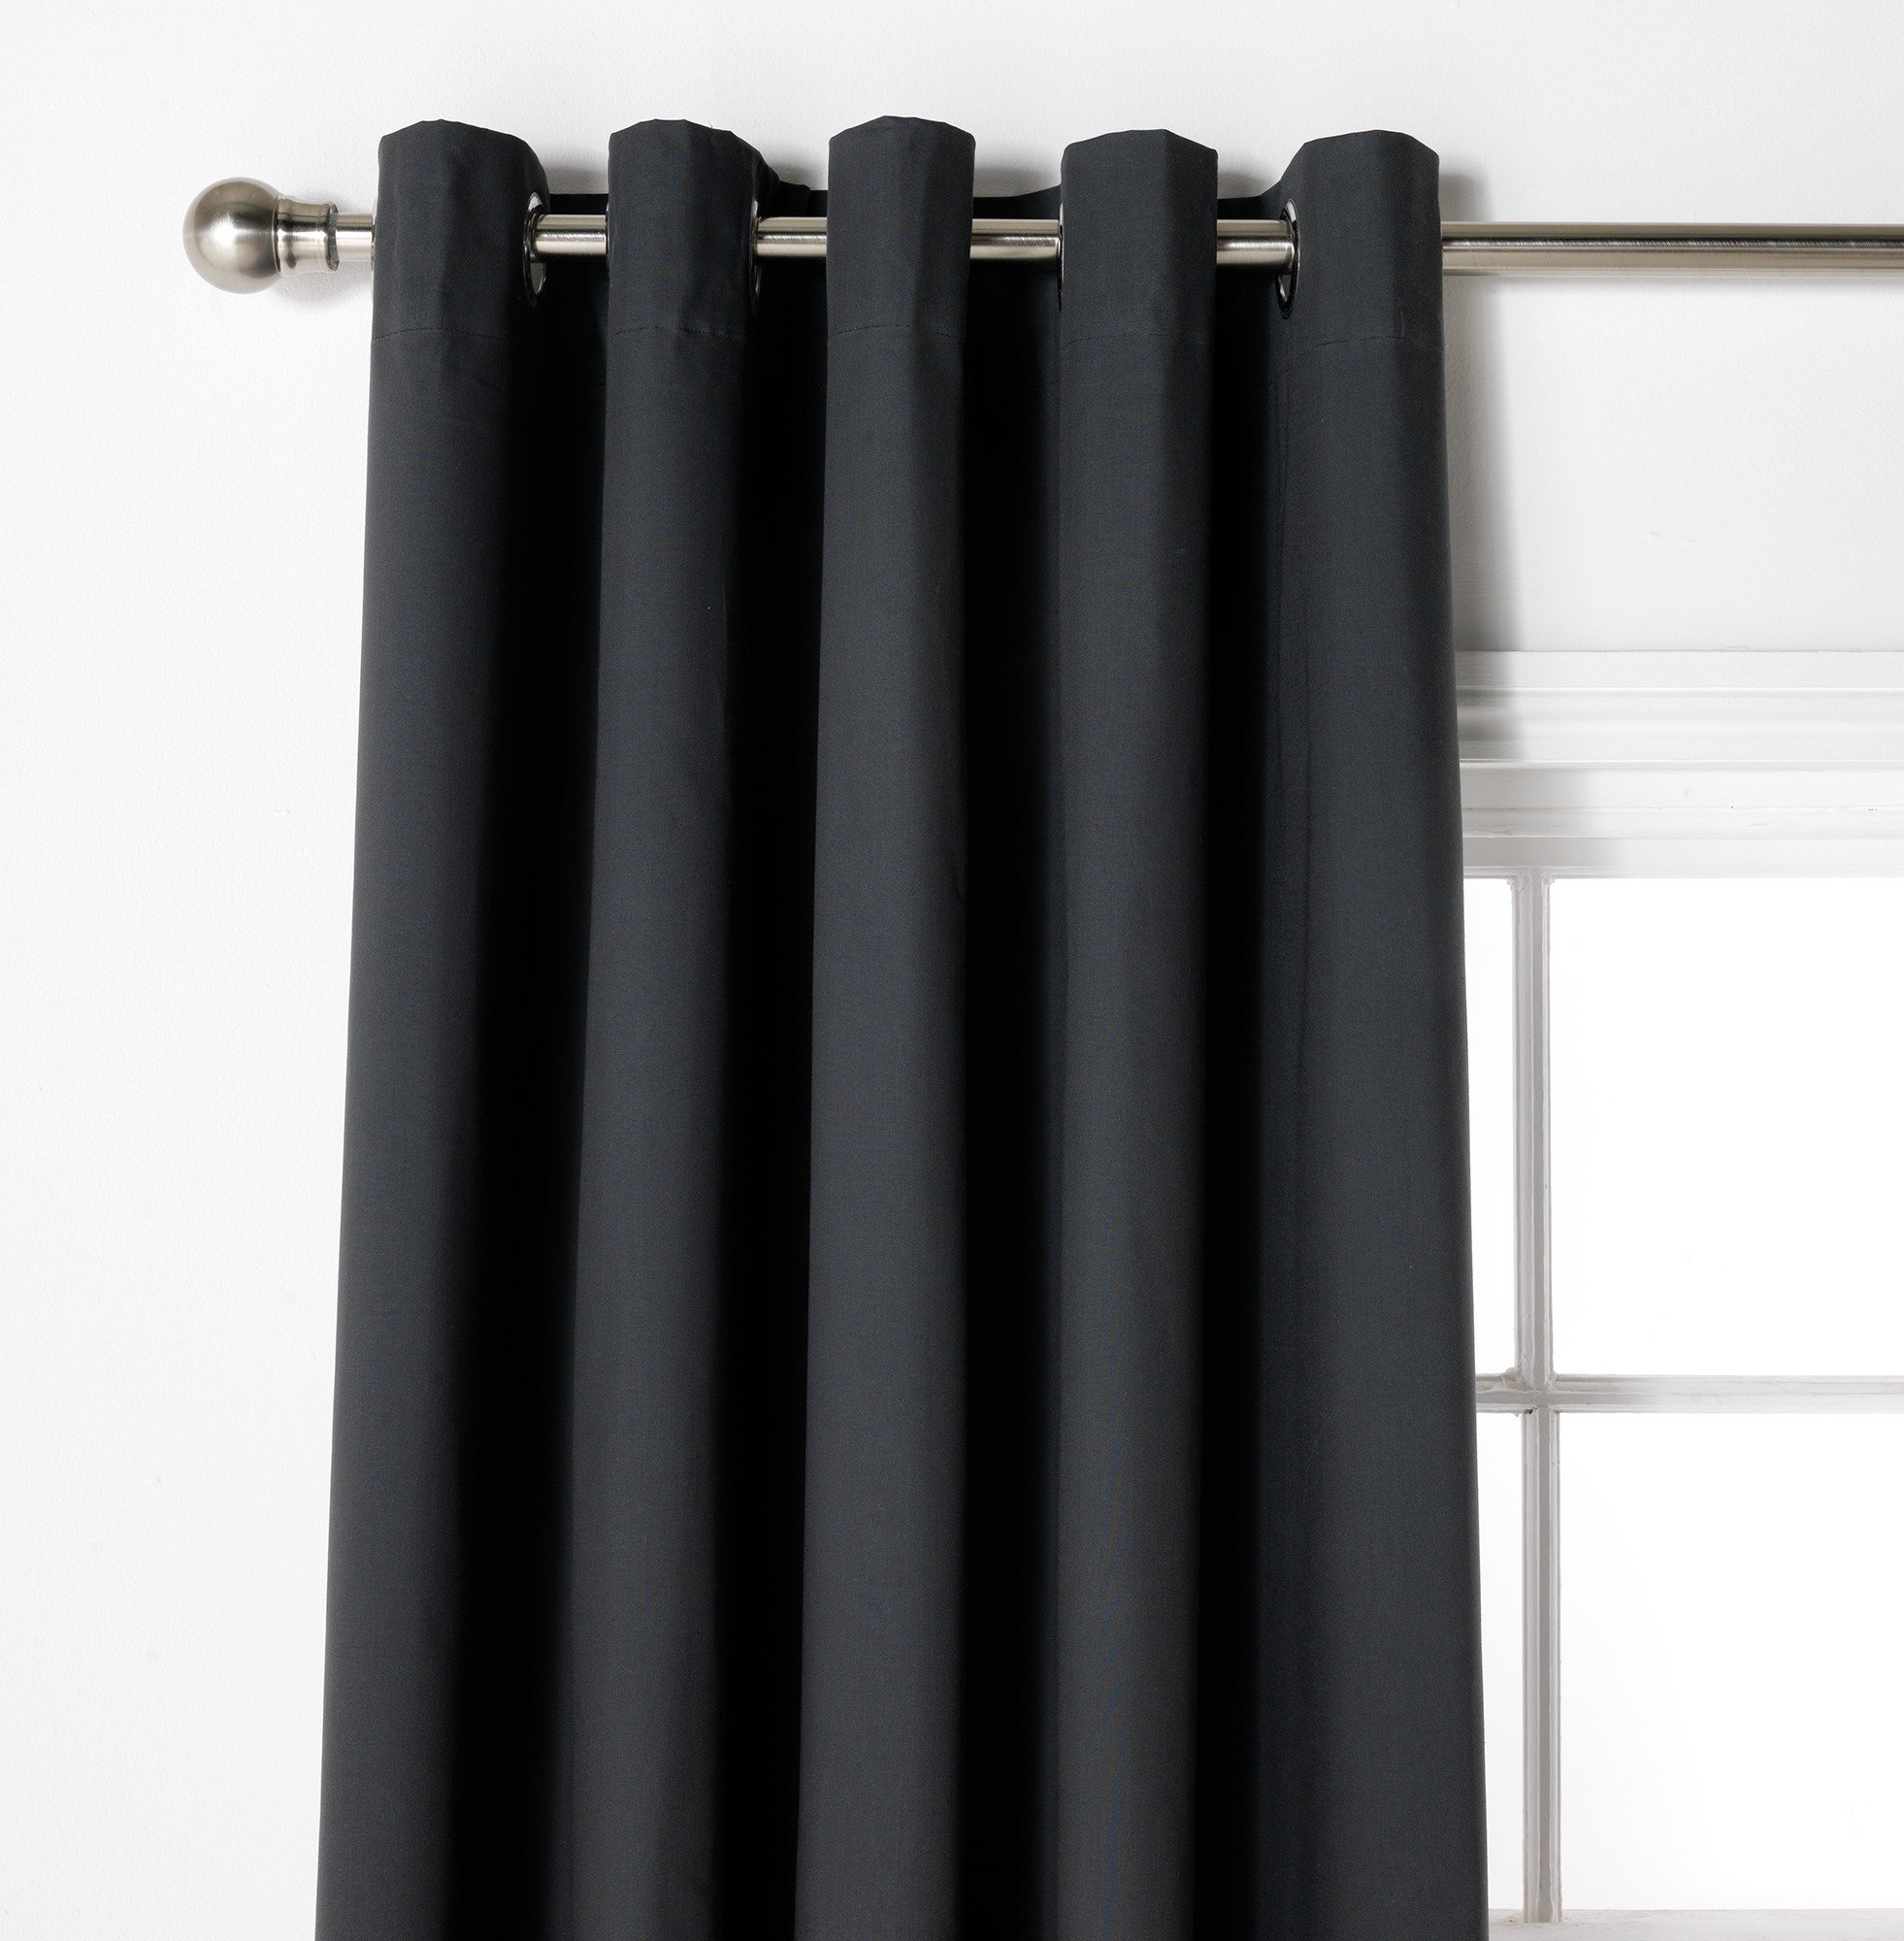 Thermal Curtains Thermal Lined Curtains Thick Curtains Heavy Curtains Thermal Curtains Home